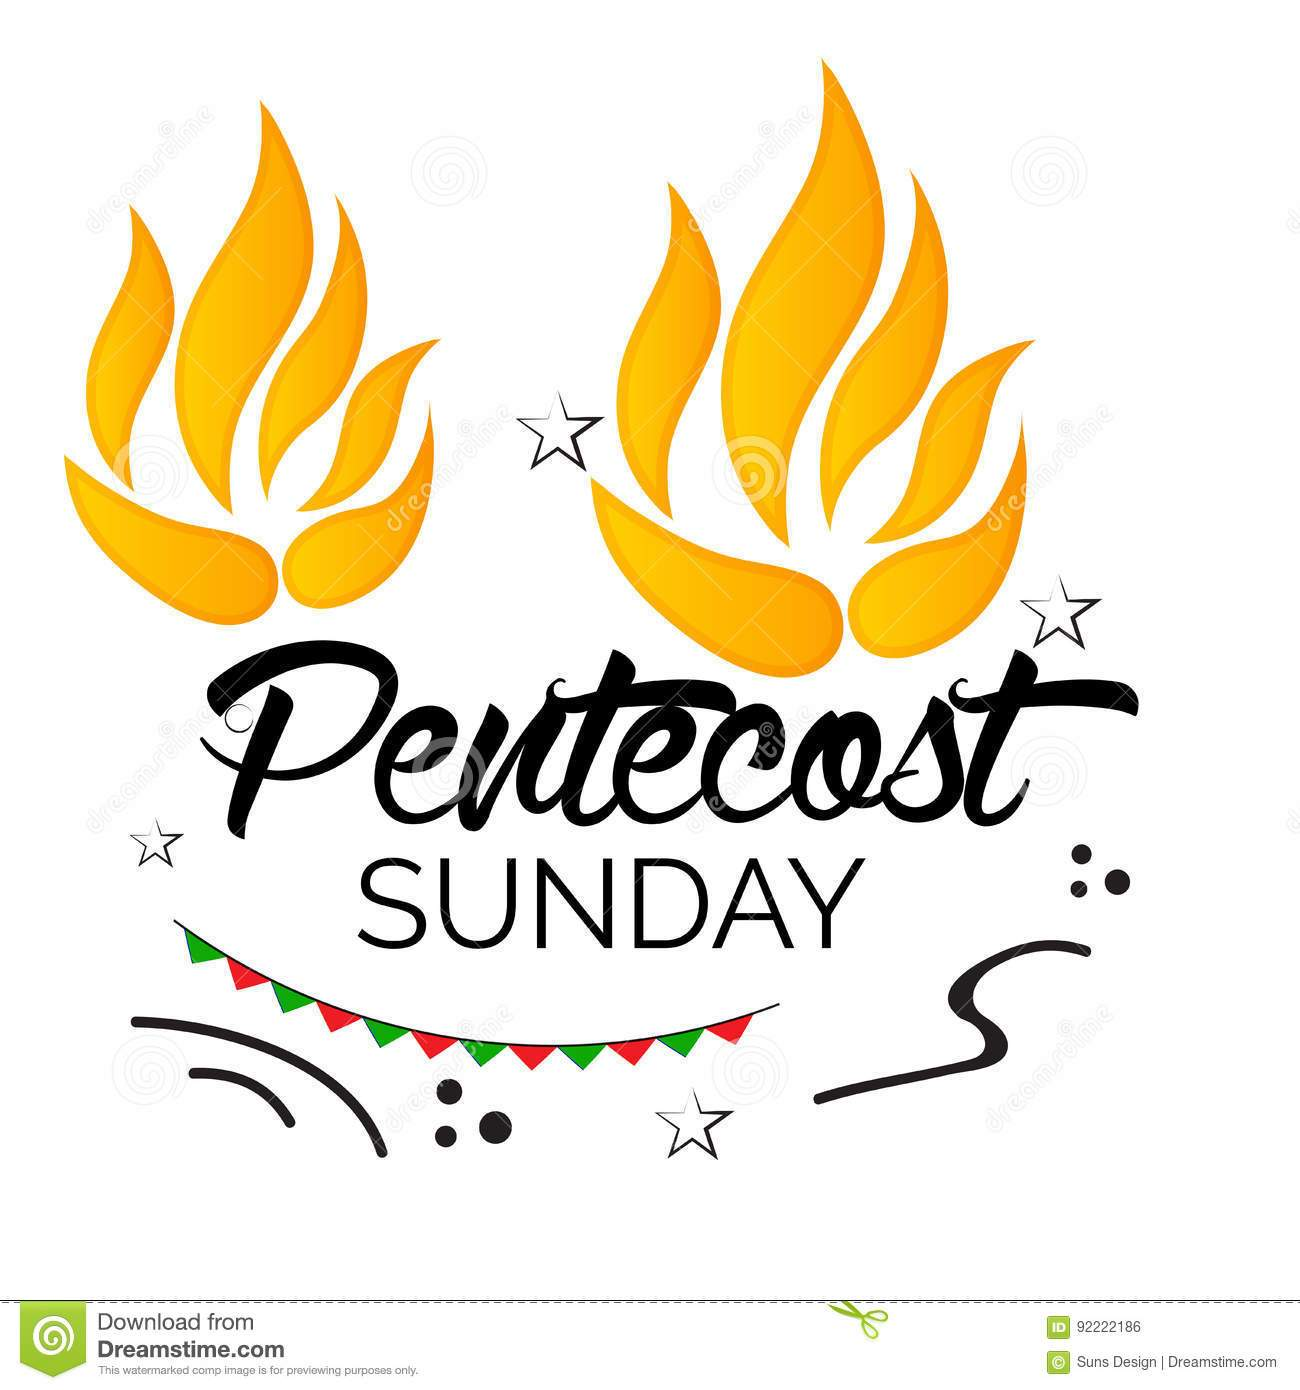 Day of pentecost clipart 4 » Clipart Portal.